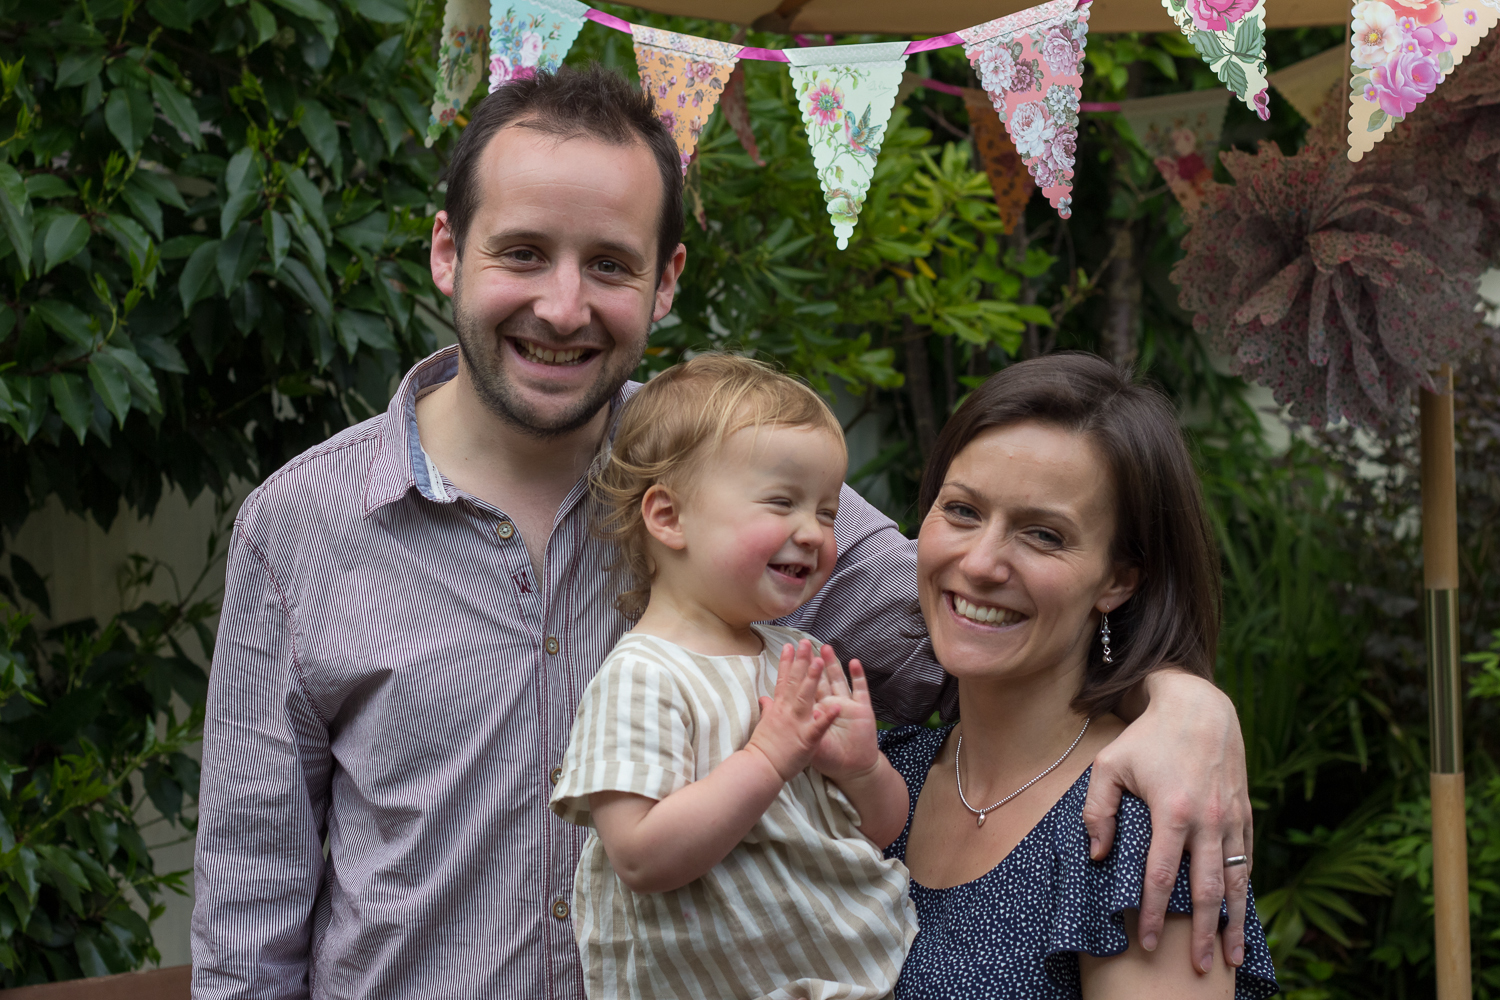 A mum, dad and their birthday girl pose for a family photograph in their garden in Tunbridge Wells - the little girl is clapping her hands, and you can see bunting in the background